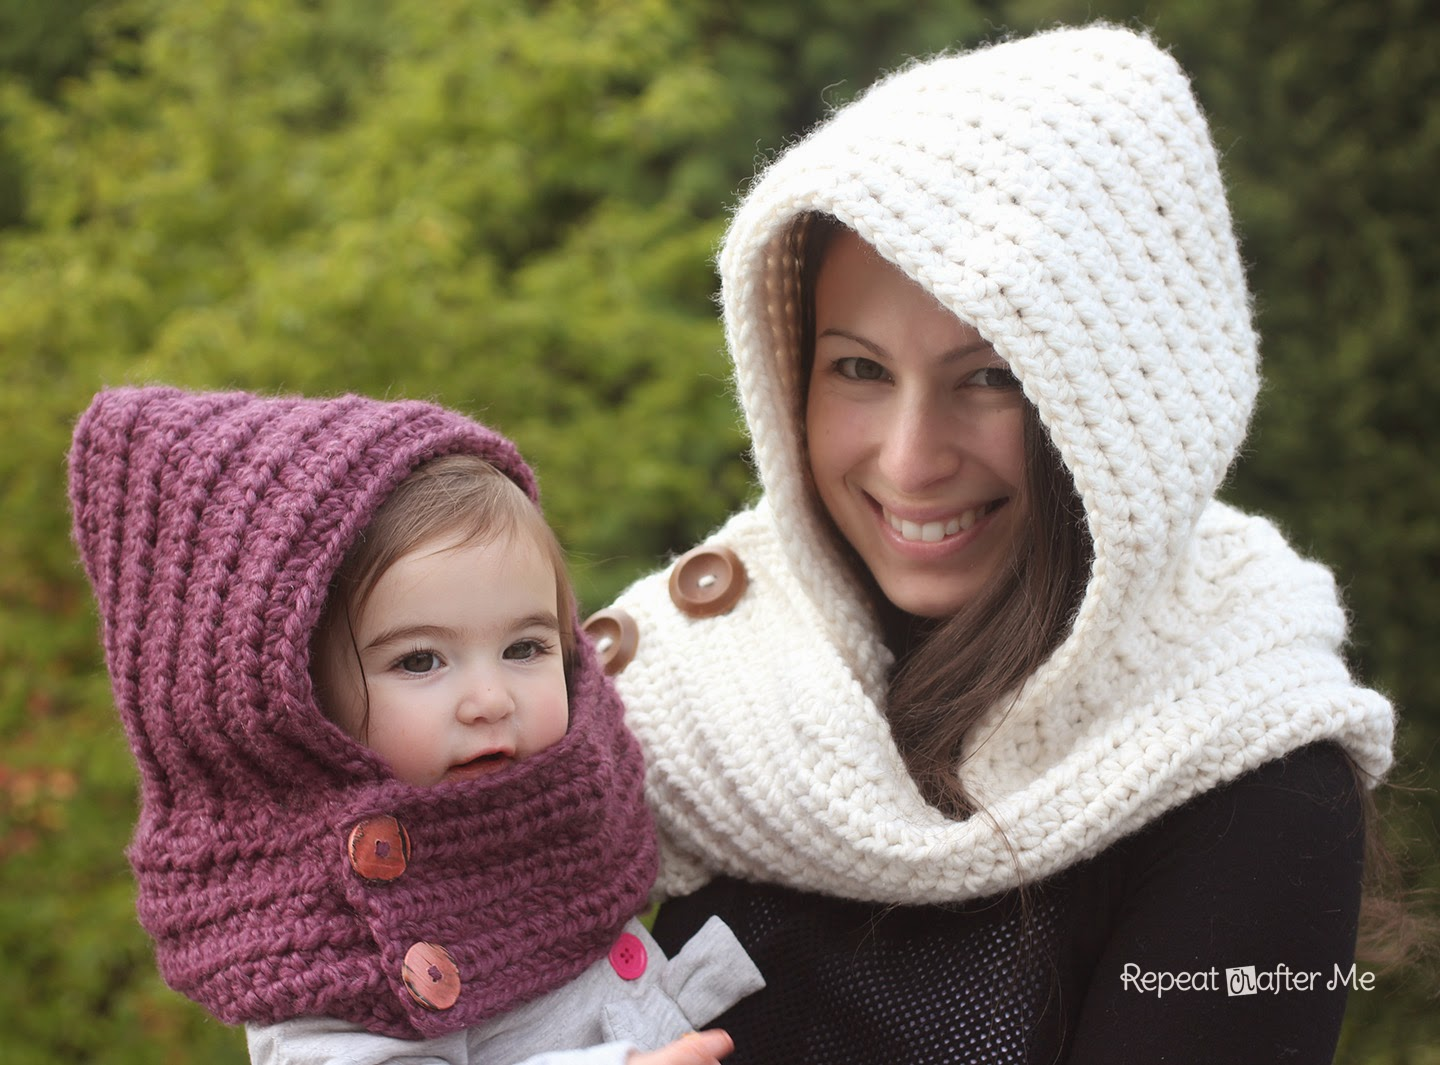 Crochet Patterns For Wool Ease : Repeat Crafter Me: Lion Brand Wool-Ease Thick & Quick Yarn ...